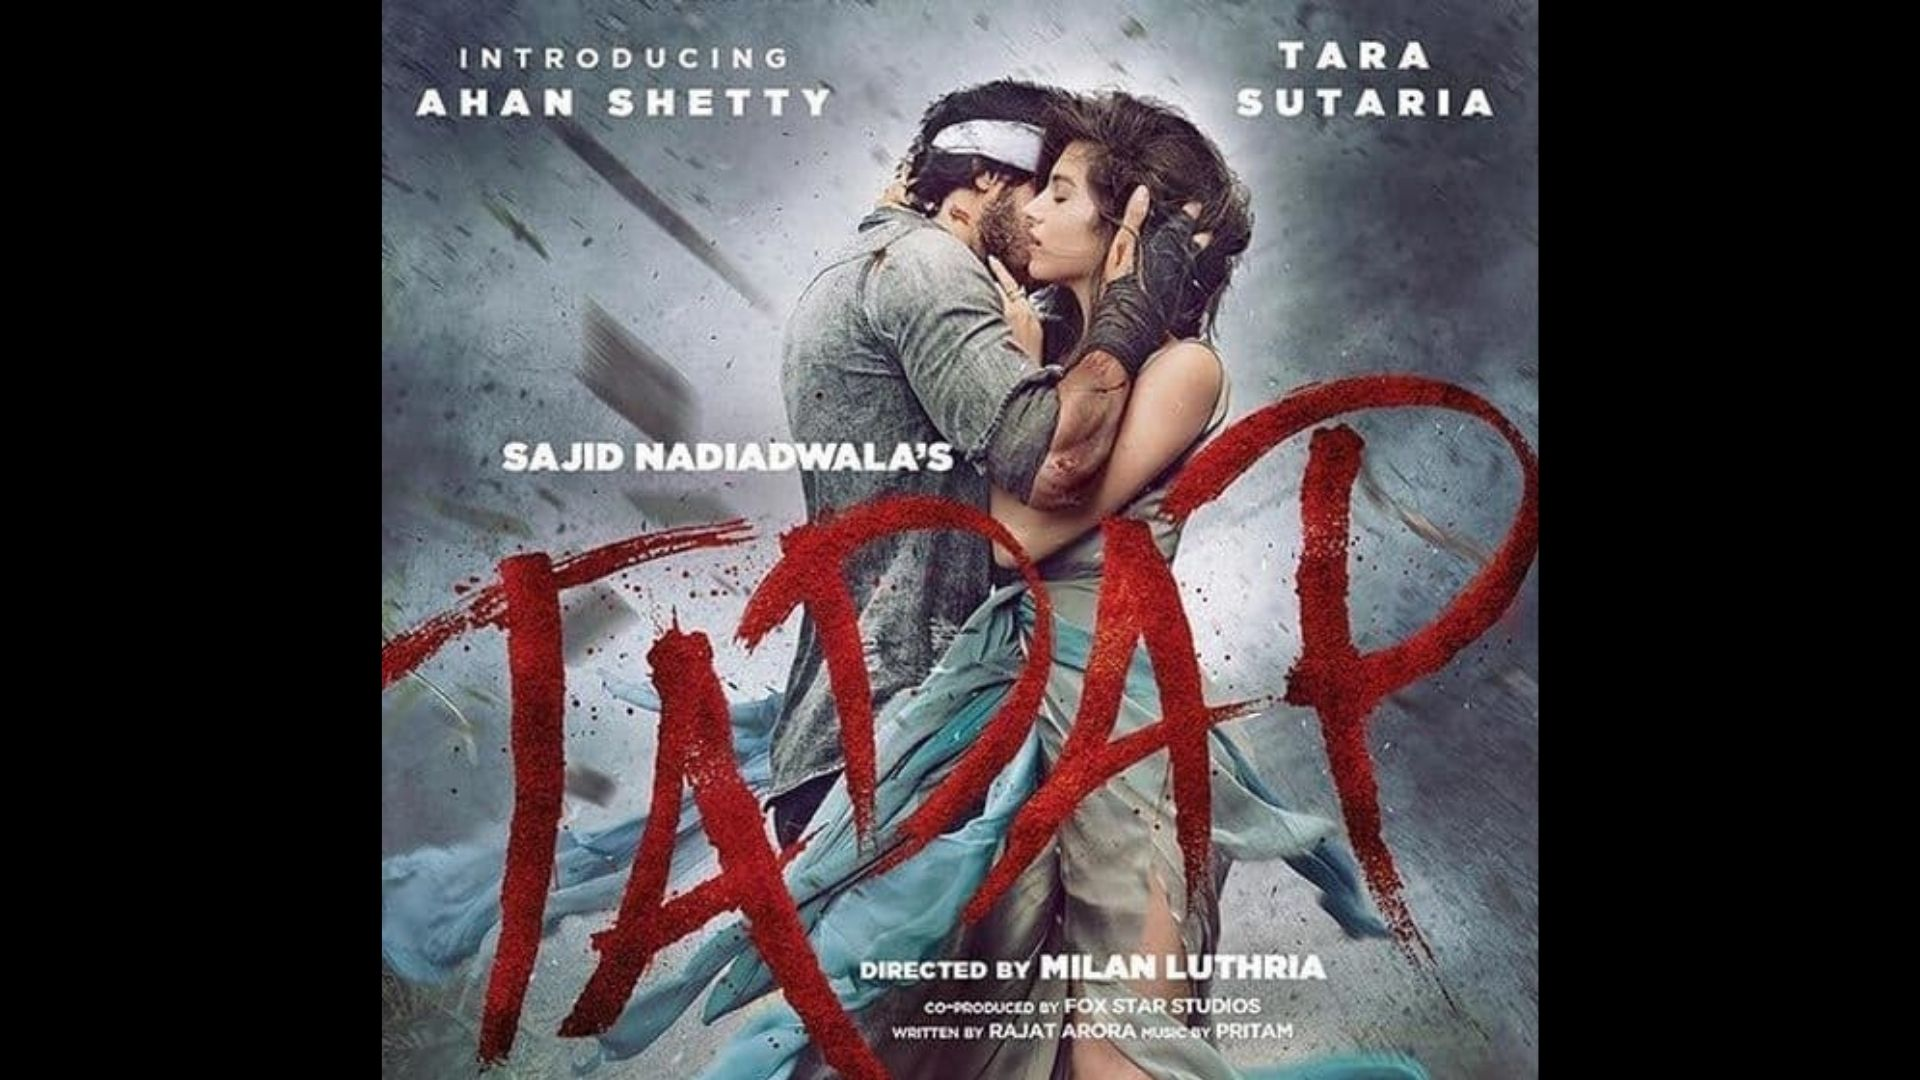 Tadap New Poster Out: Tara Sutaria And Ahan Shetty's Intense Romance Goes Viral On The Internet; Here's How Netizens Are Reacting